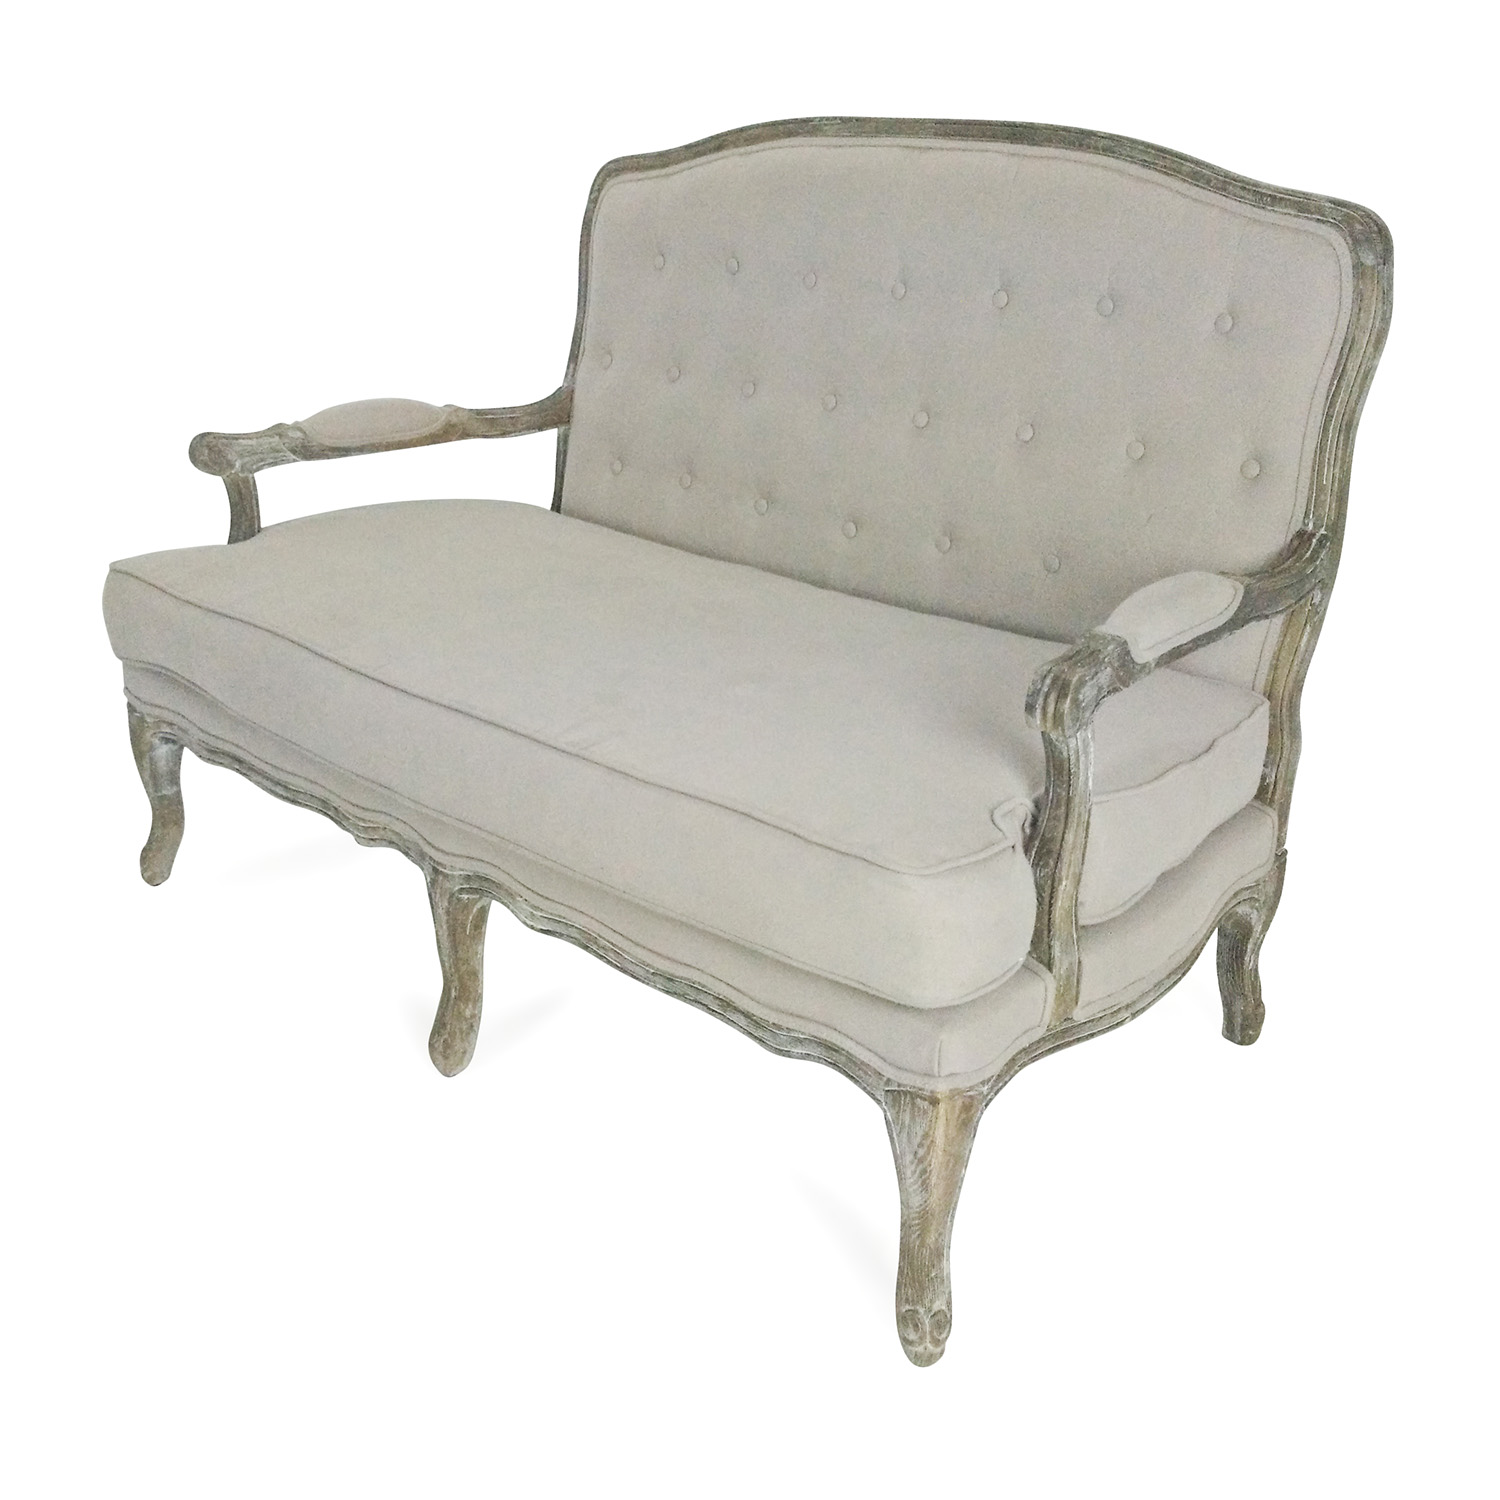 78% OFF All Modern All Modern Shabby Chic Couch Sofas